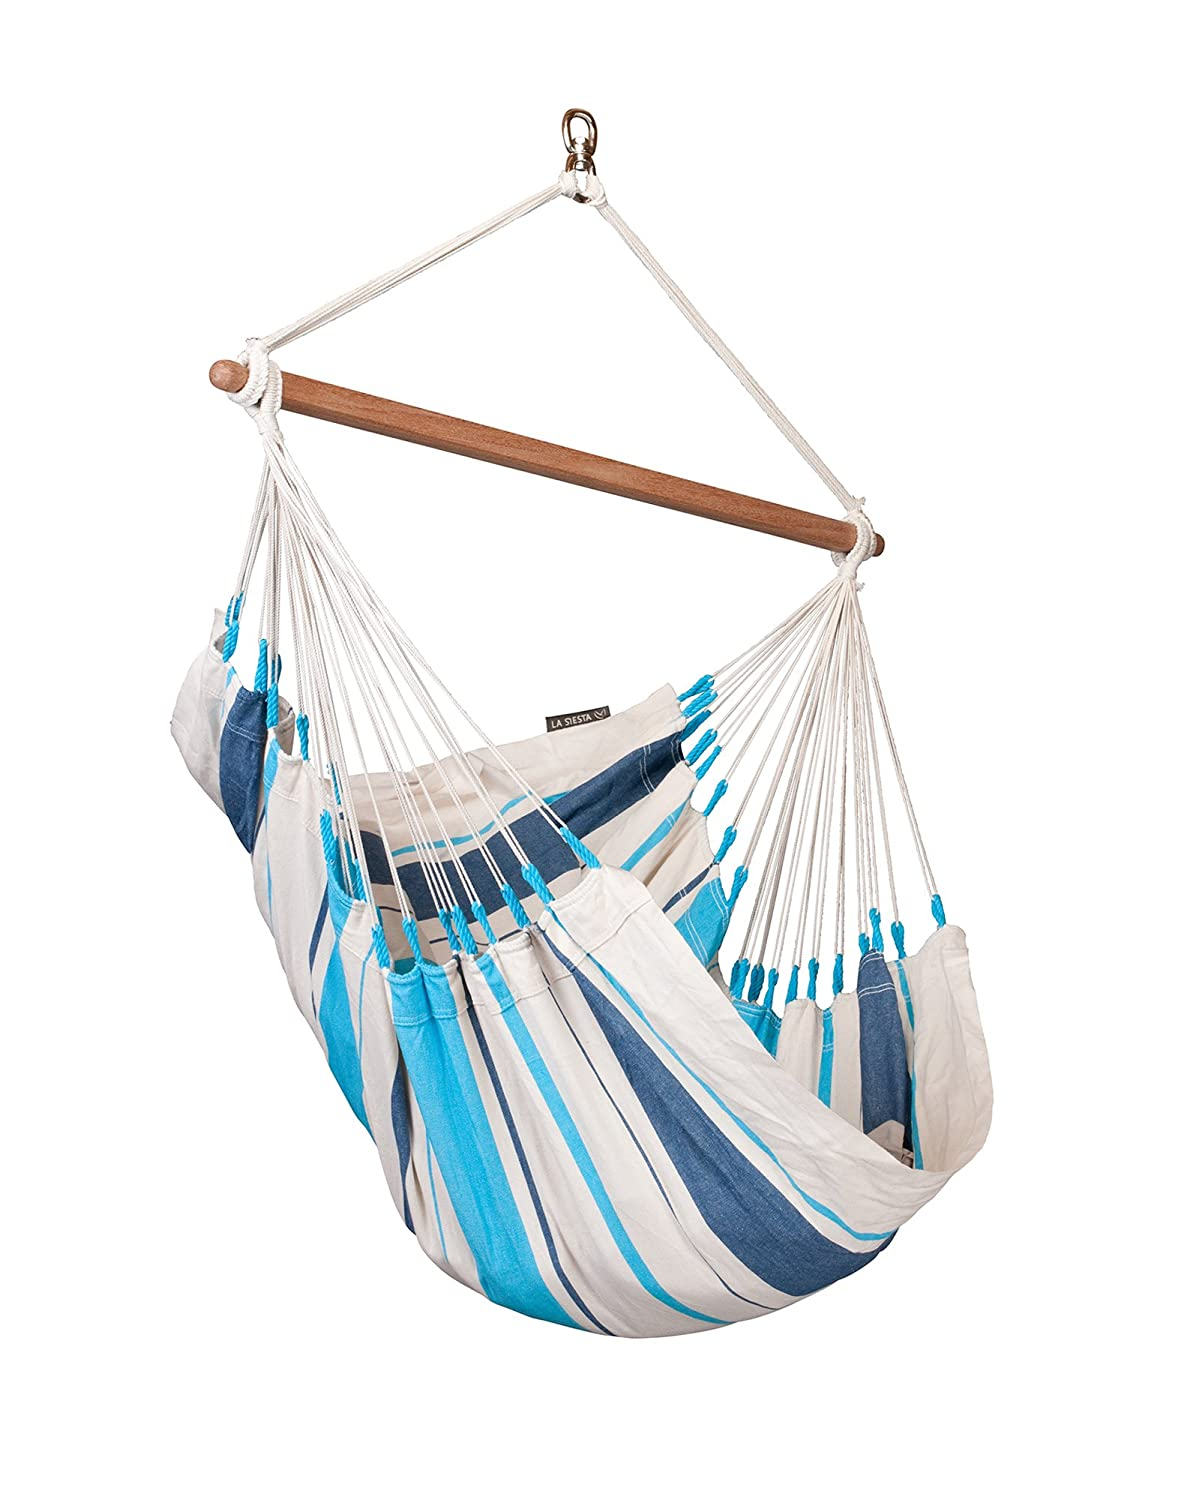 LA SIESTA Caribena Aqua Blue – Cotton Basic Hammock Swing Chair